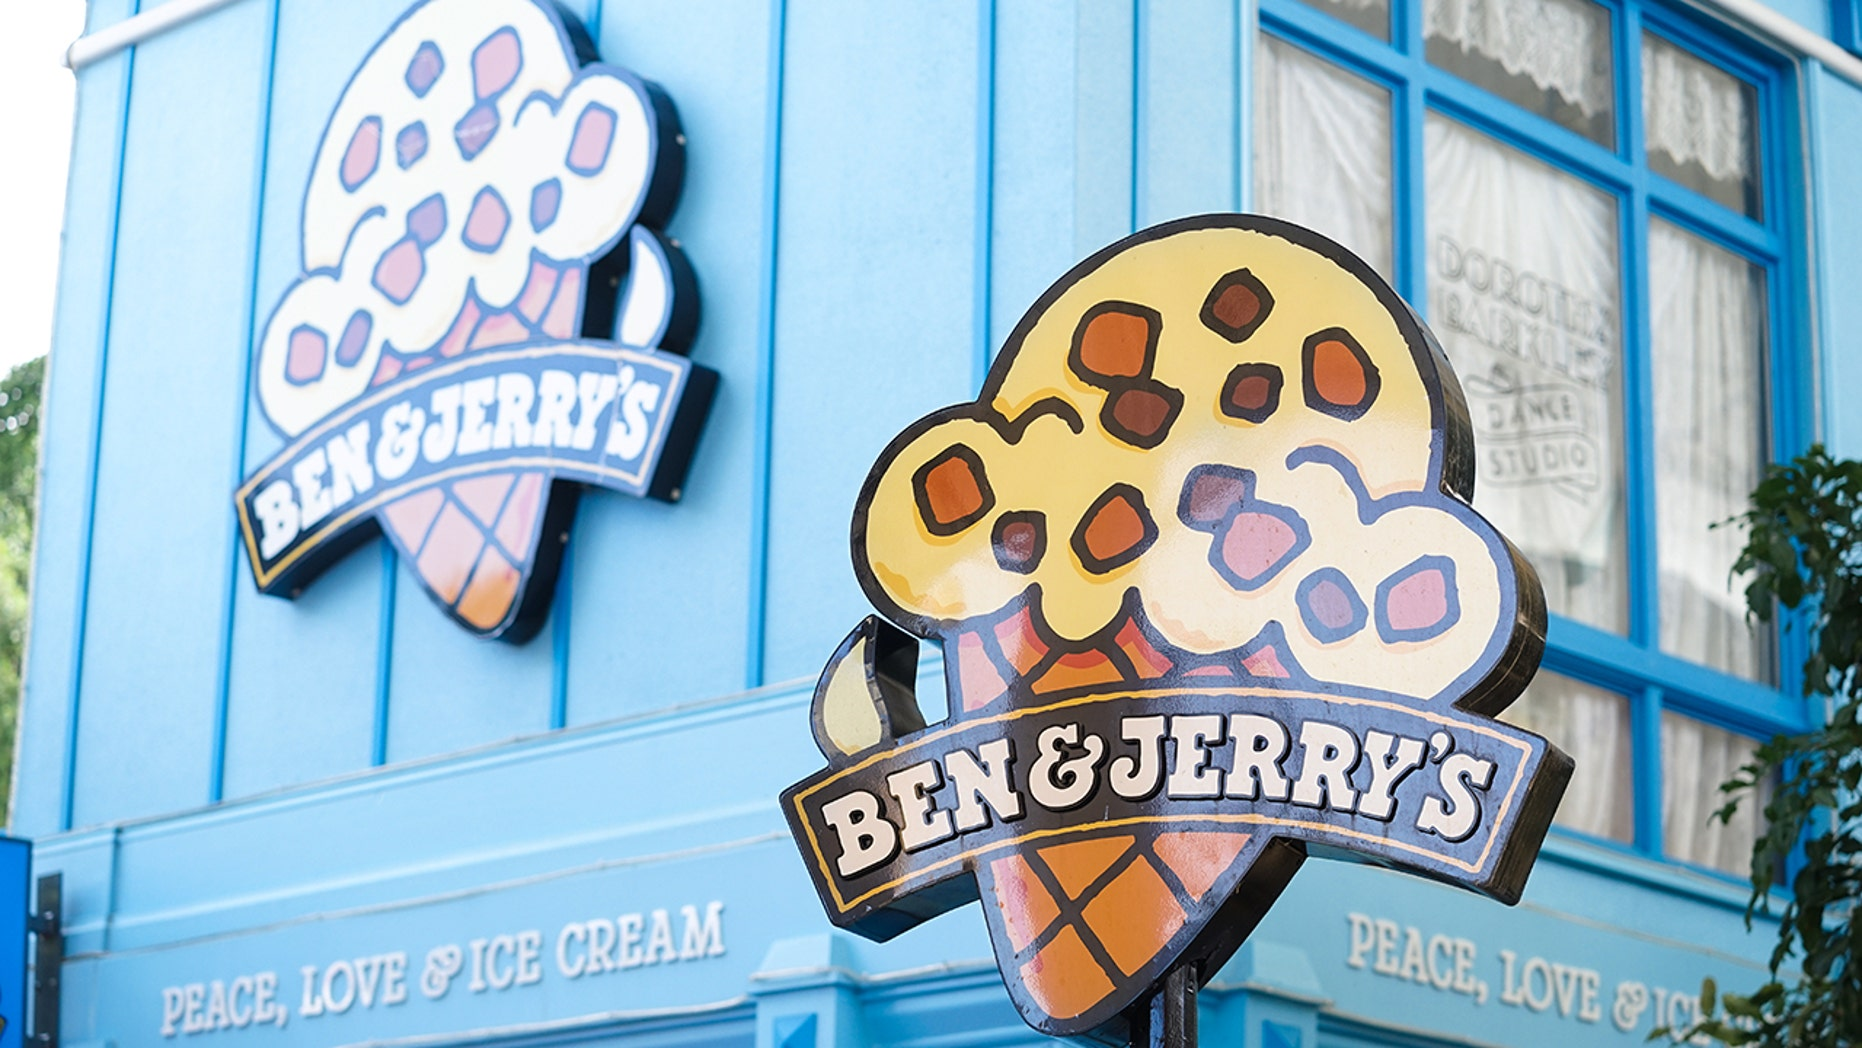 Ben & Jerry's ice cream shop in Movie World's Gold Coast. Ben & Jerry's has created a petition to expunge prior marijuana convictions